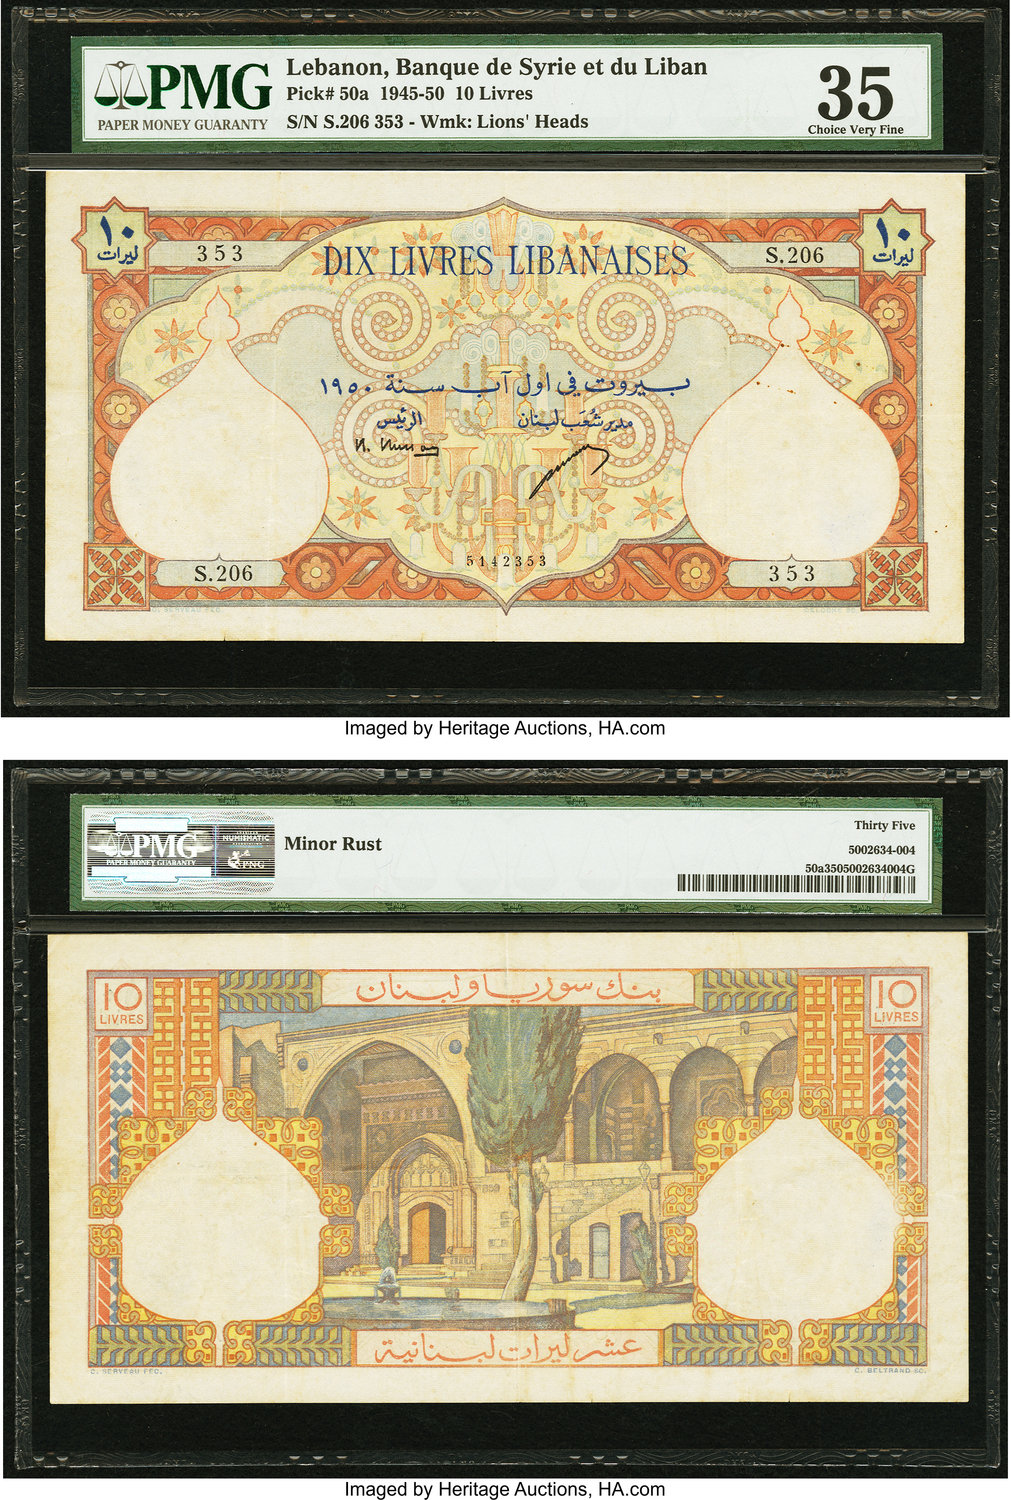 World Currency Lebanon Banque De Syrie Et Du Liban 10 Livres 1945 50 Pick 50a Some Very Minor Rust Distracts